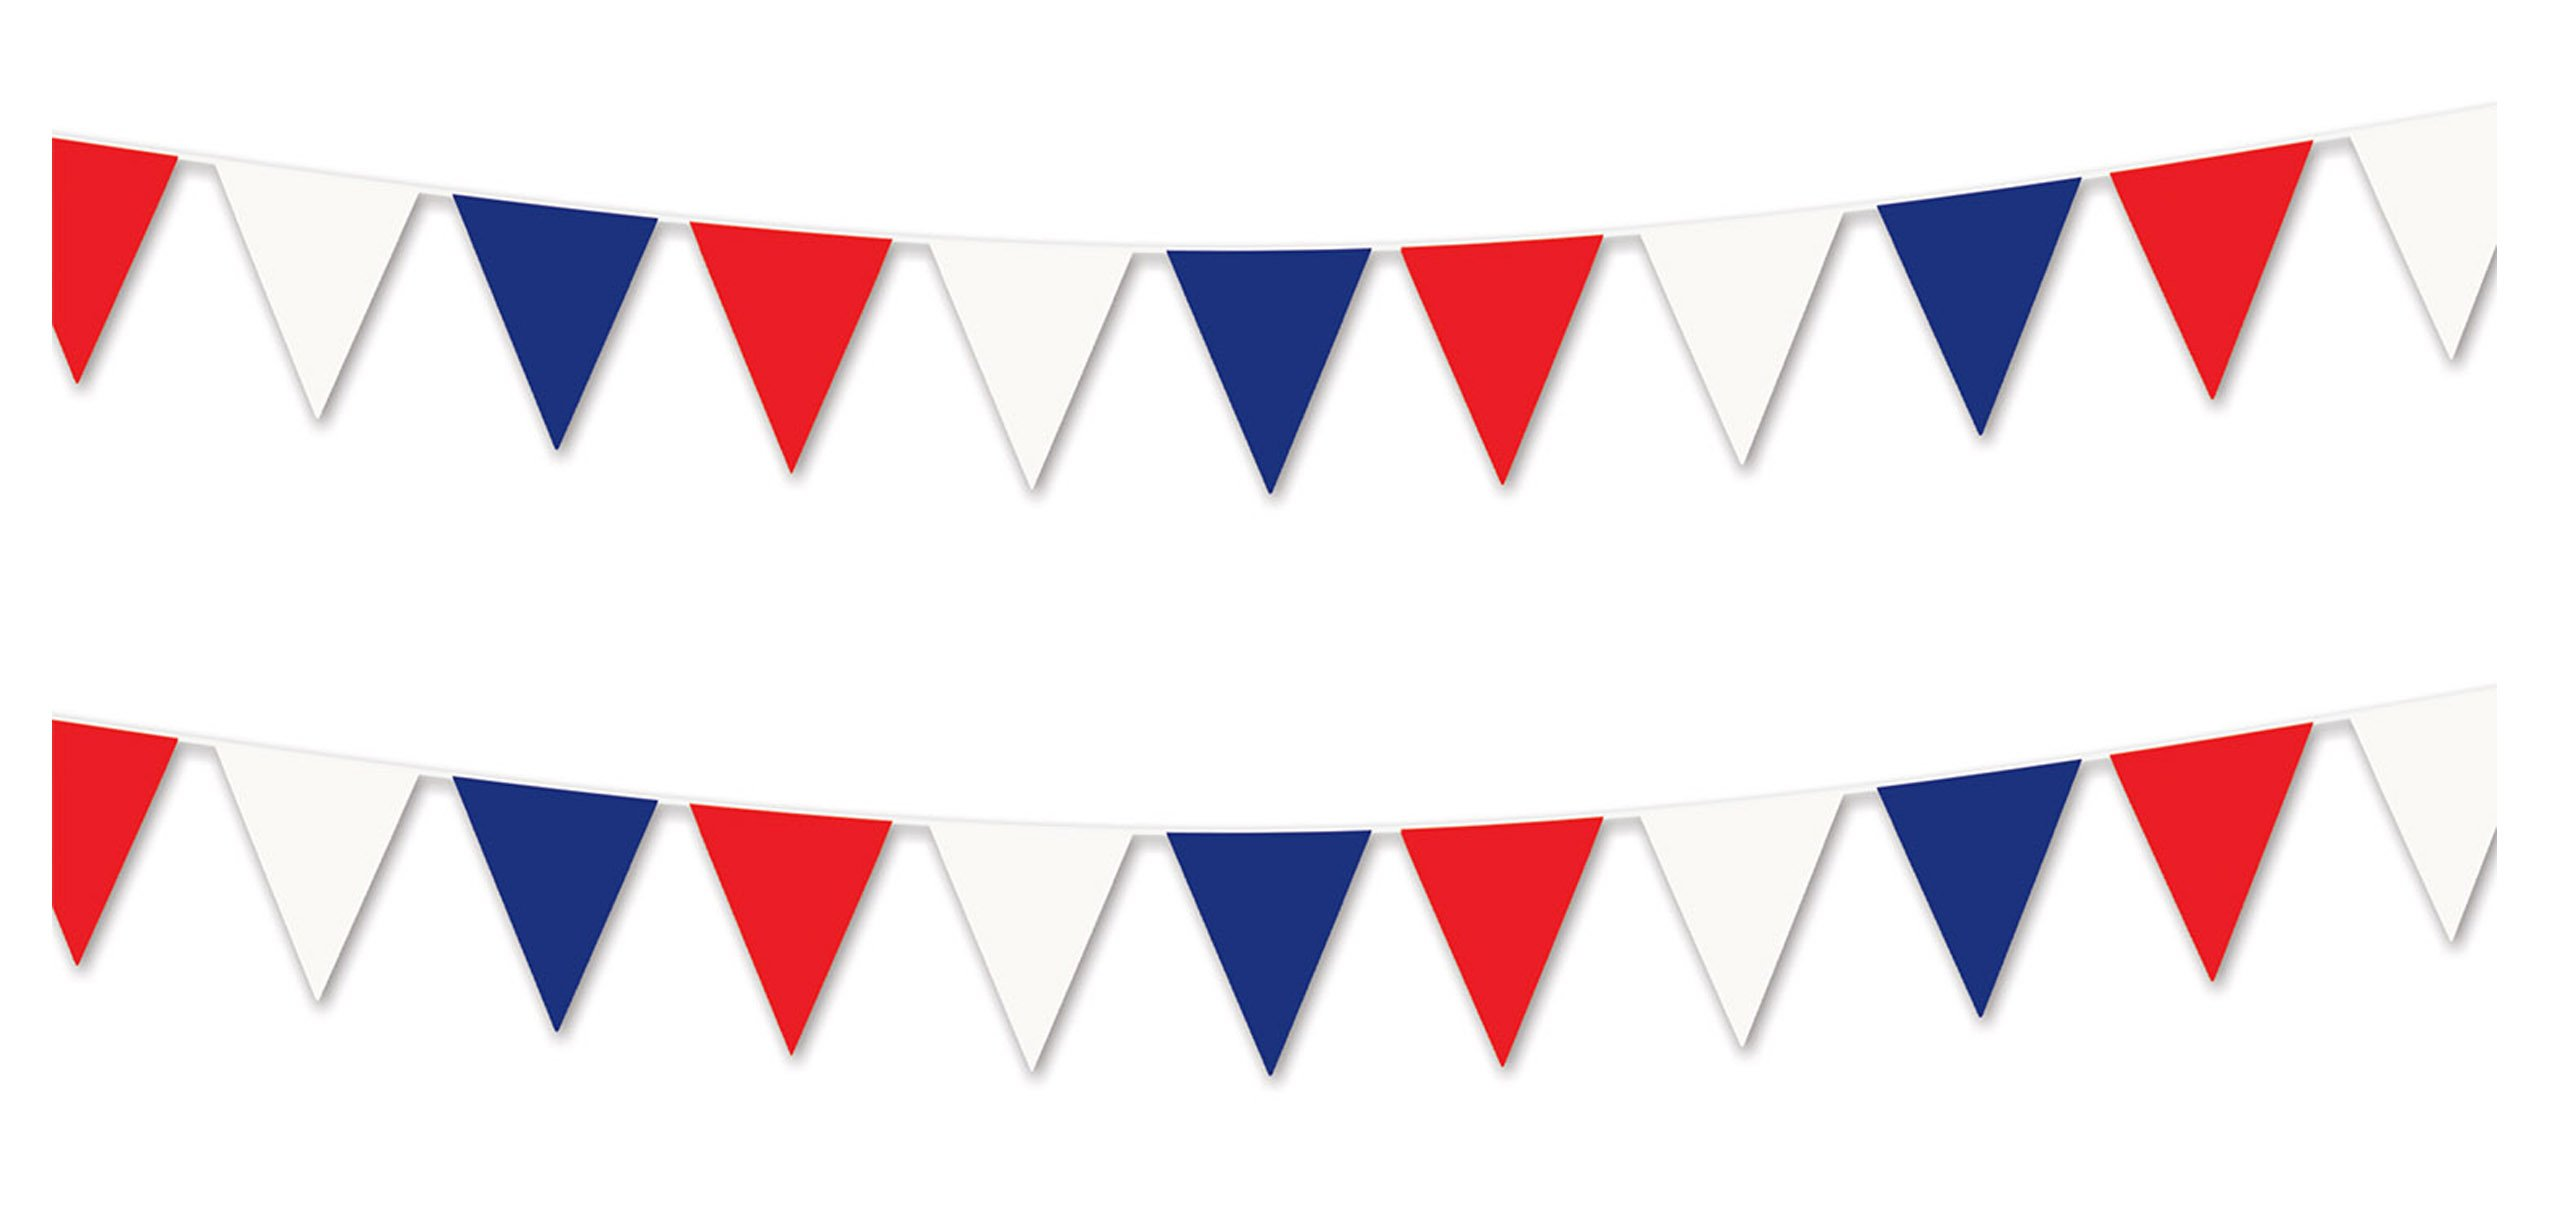 Beistle S50700-RWBAZ2 Pennant banner, Red/White/Blue